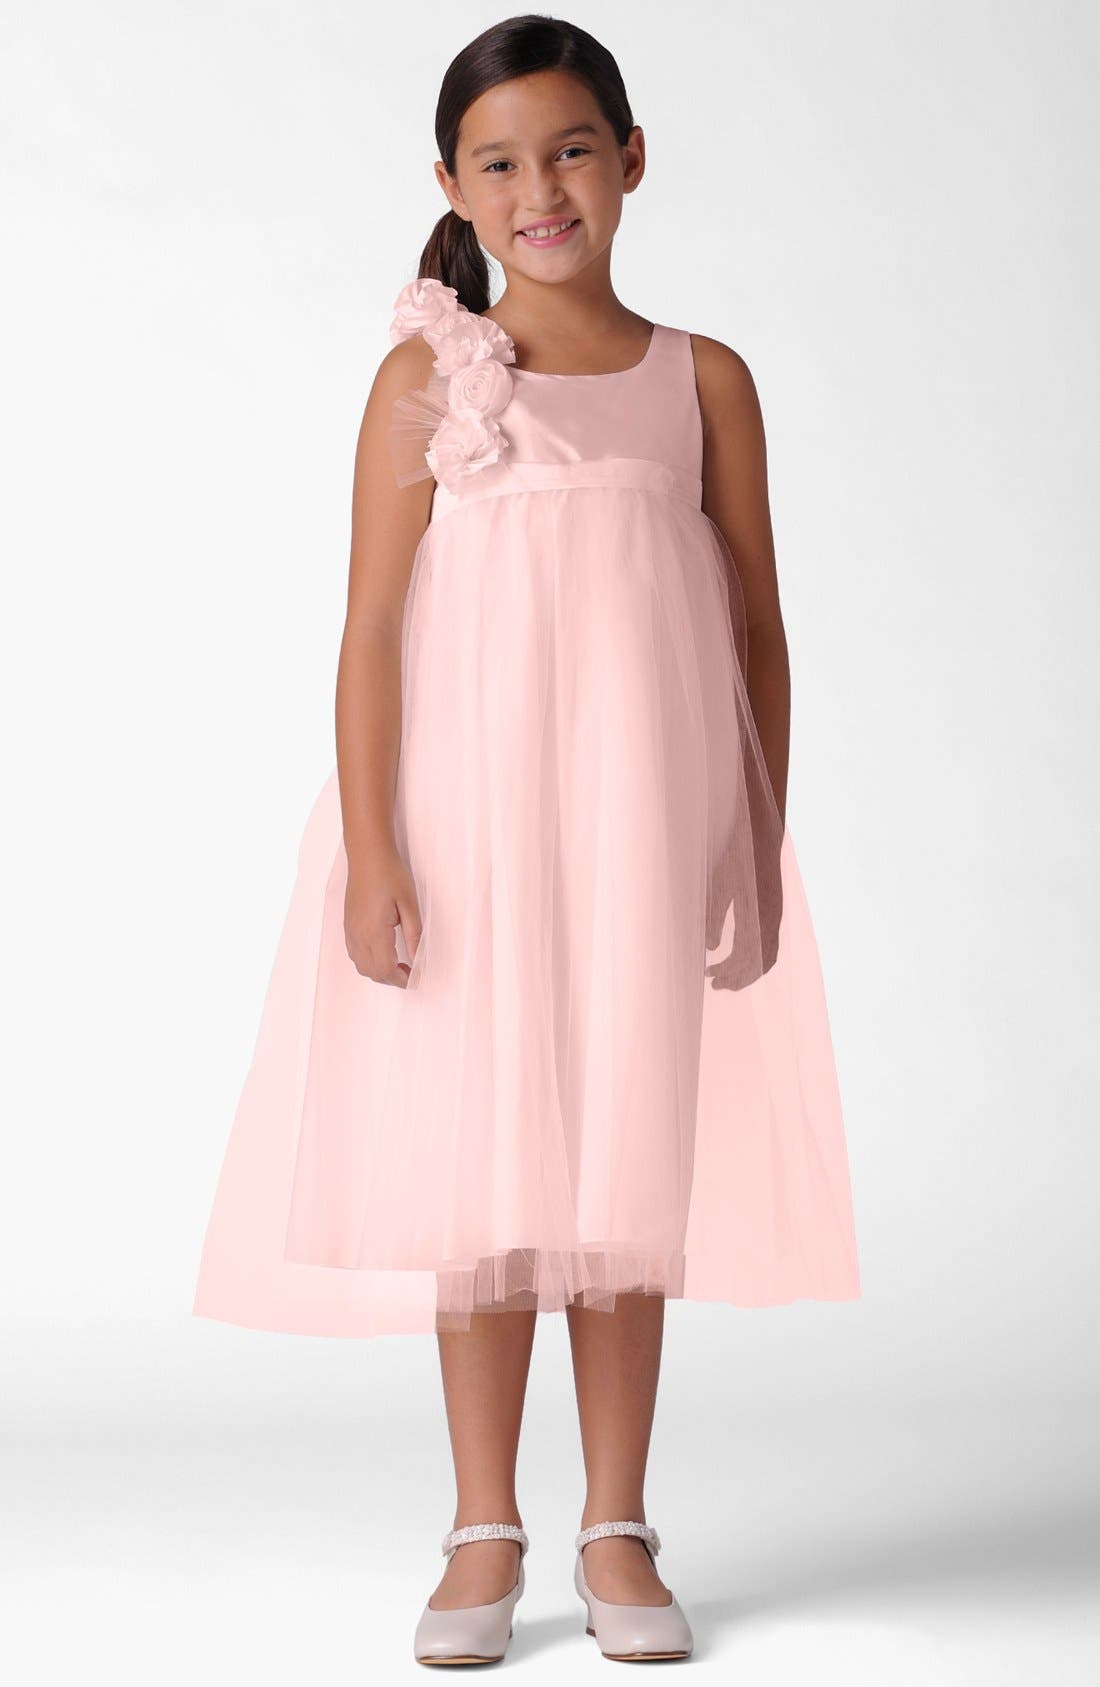 Alternate Image 1 Selected - Us Angels Dress (Baby Girls, Toddler Girls, Little Girls & Big Girls)